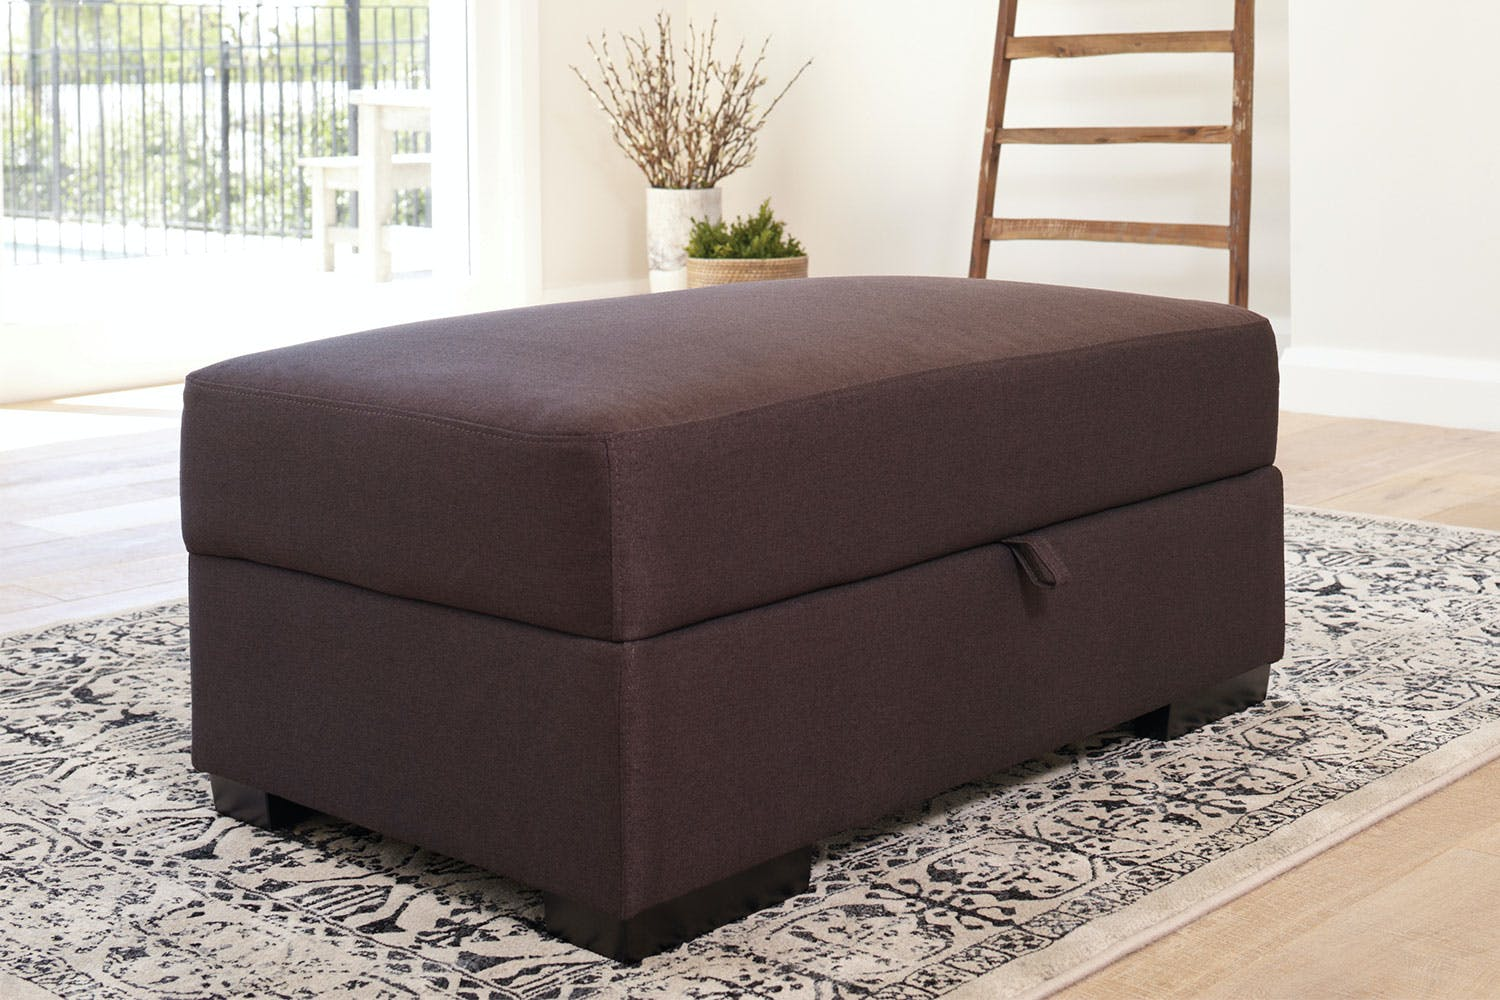 Sofa bed with ottoman beautiful double bed ottoman sofa for Sofa bed new zealand